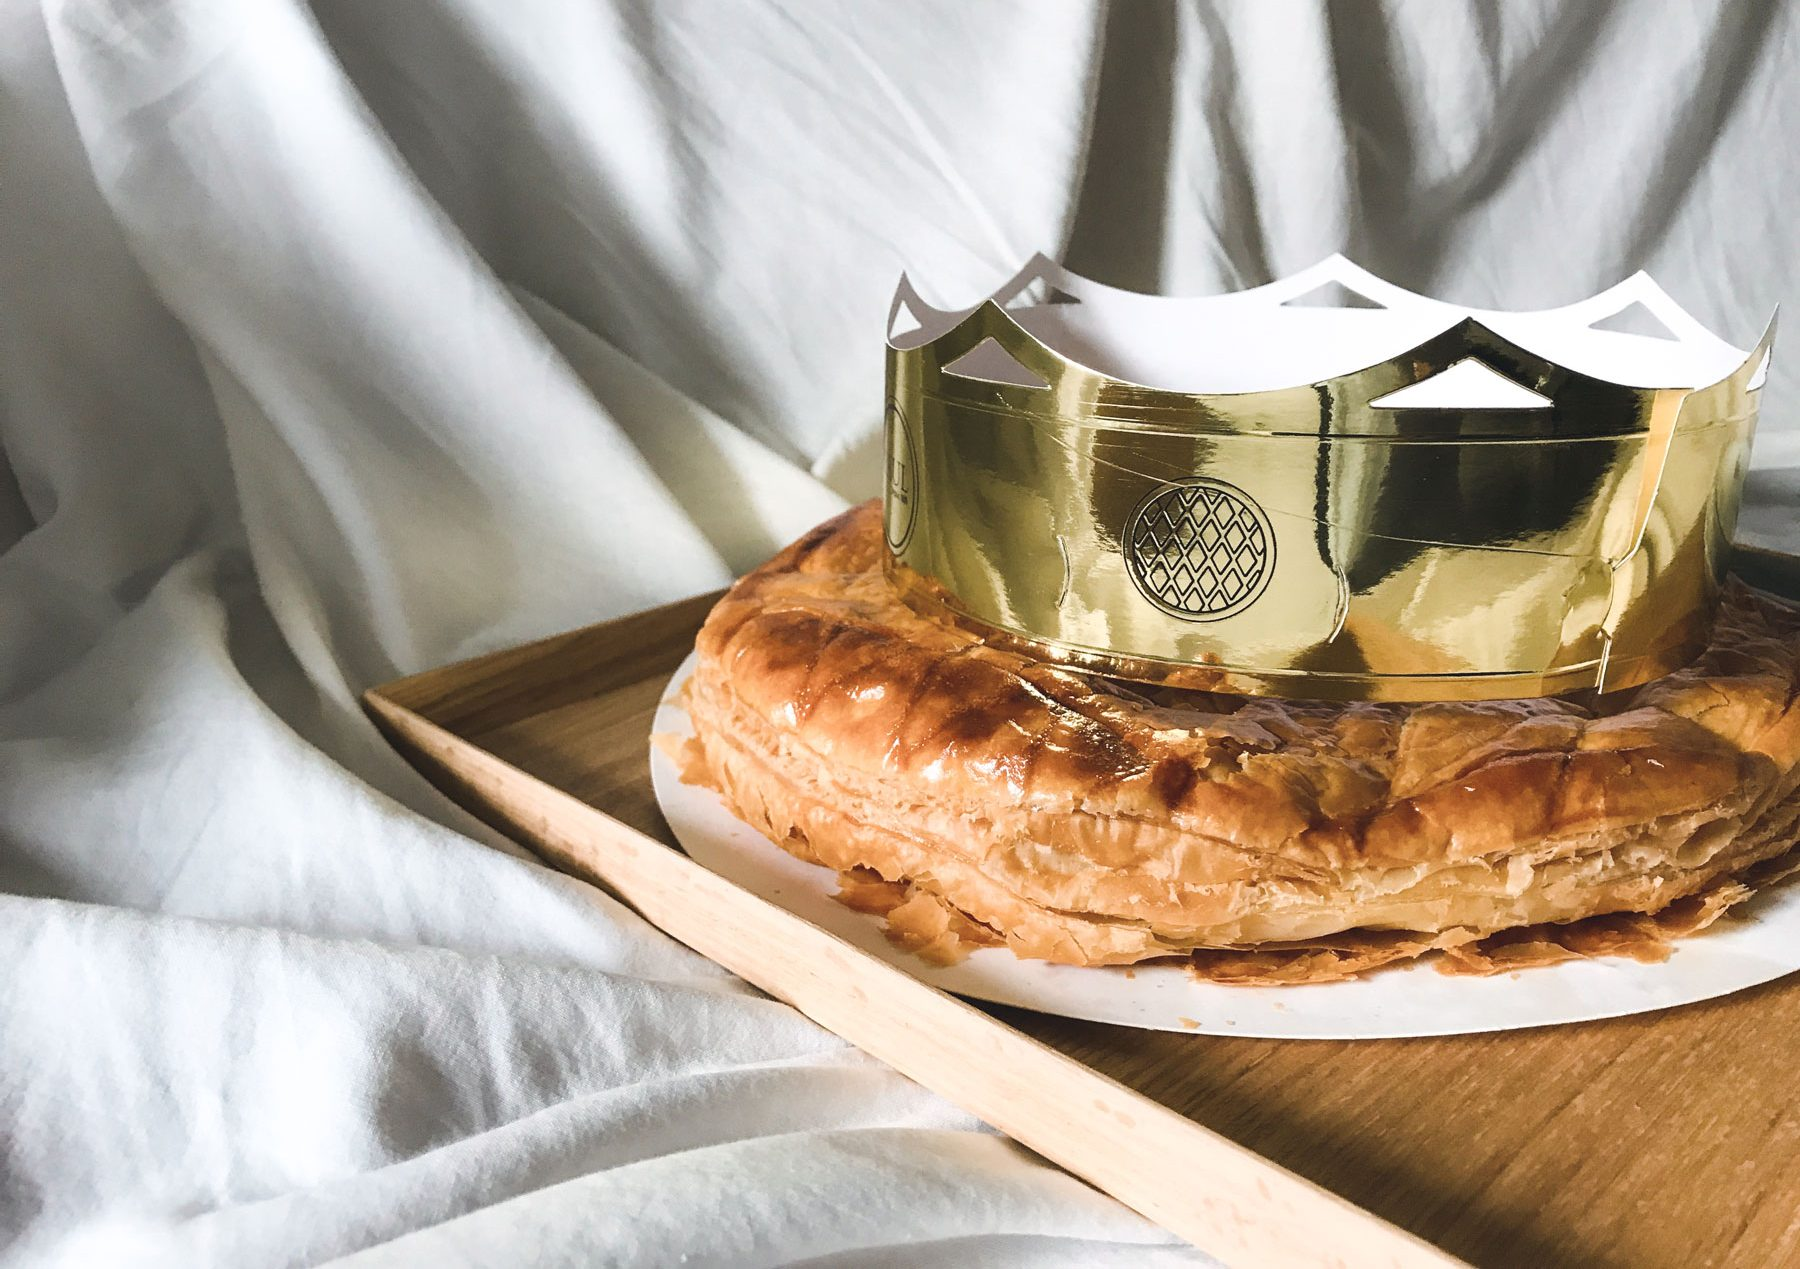 A buttery galette des rois adorned with a shiny paper crown.